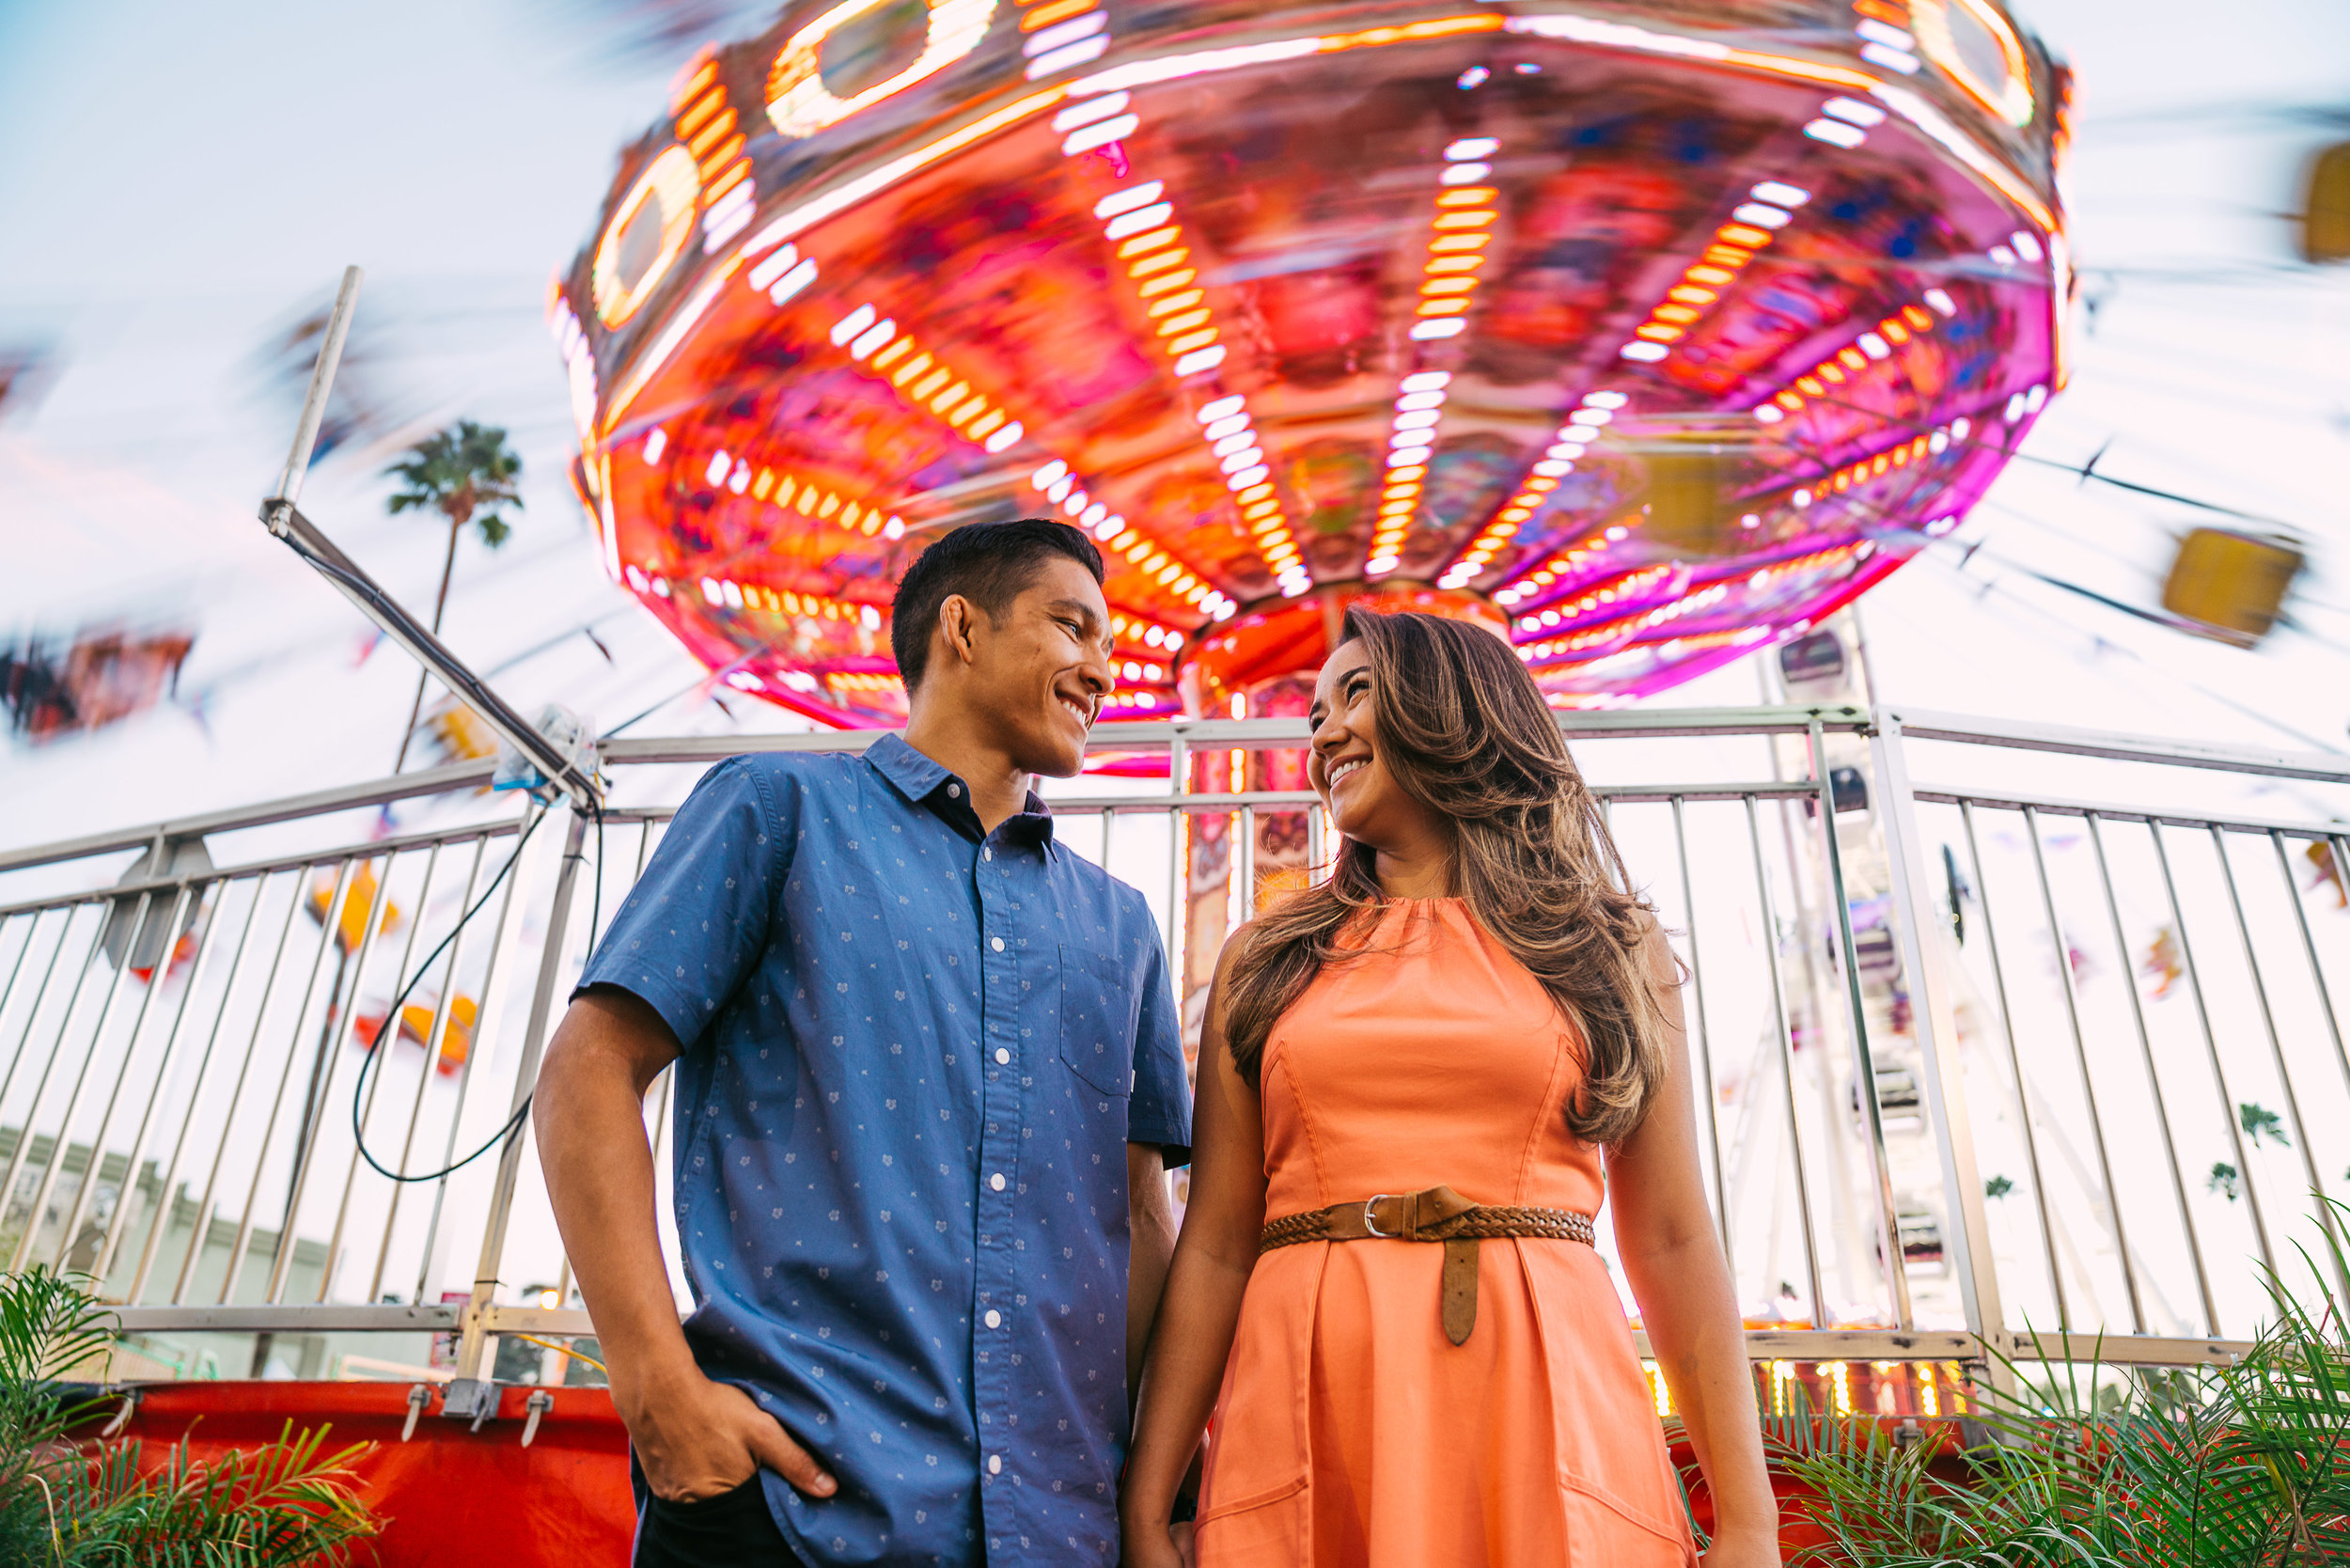 kaui-la-county-fair-engagement-photo-9.jpg